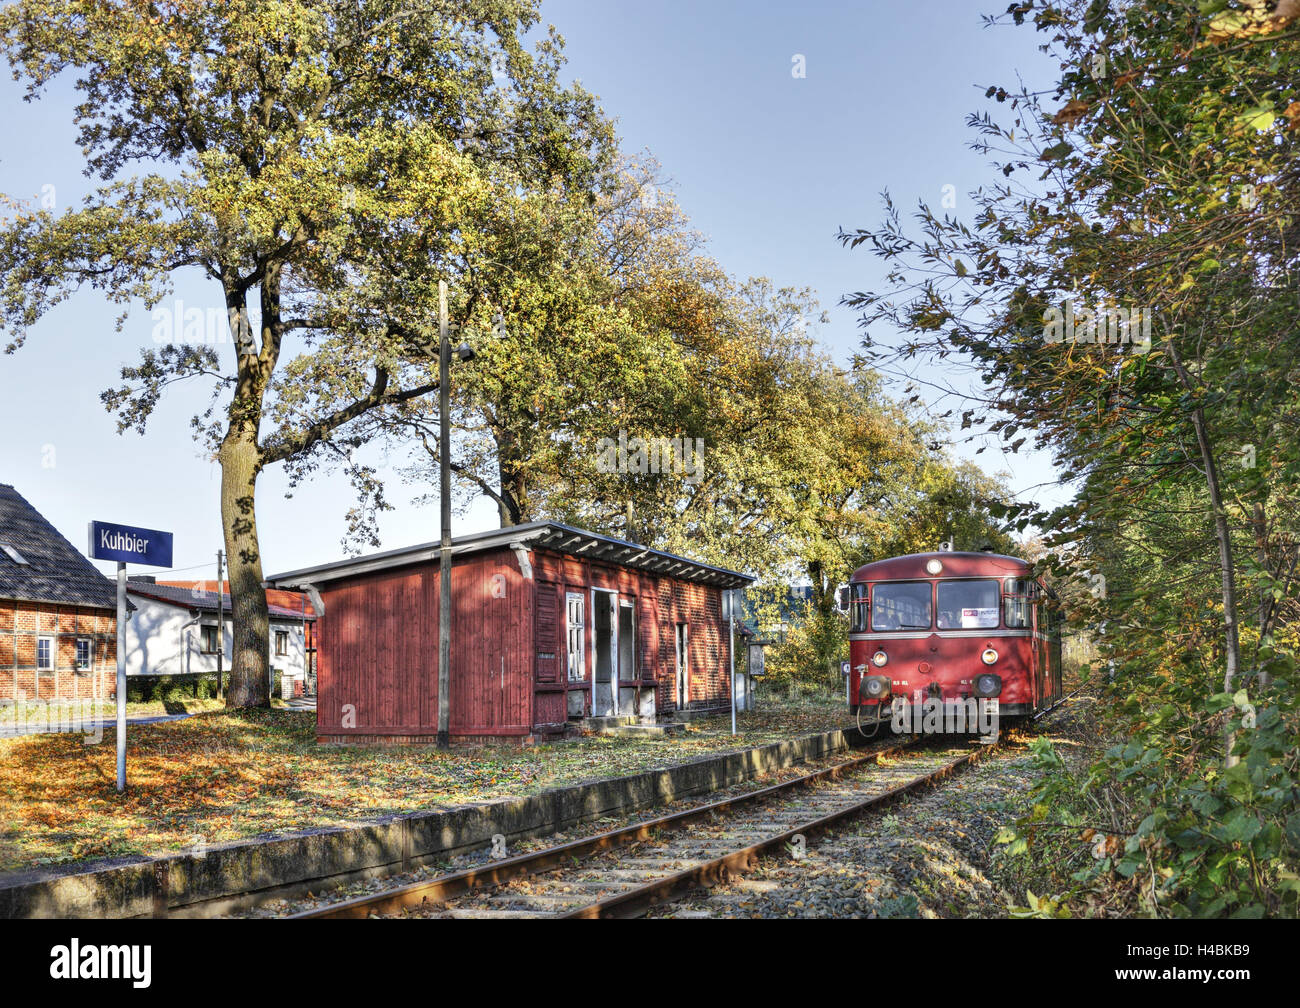 Railroad line, stop, train, building, trees, Kuhbier, Brandenburg, Germany, - Stock Image